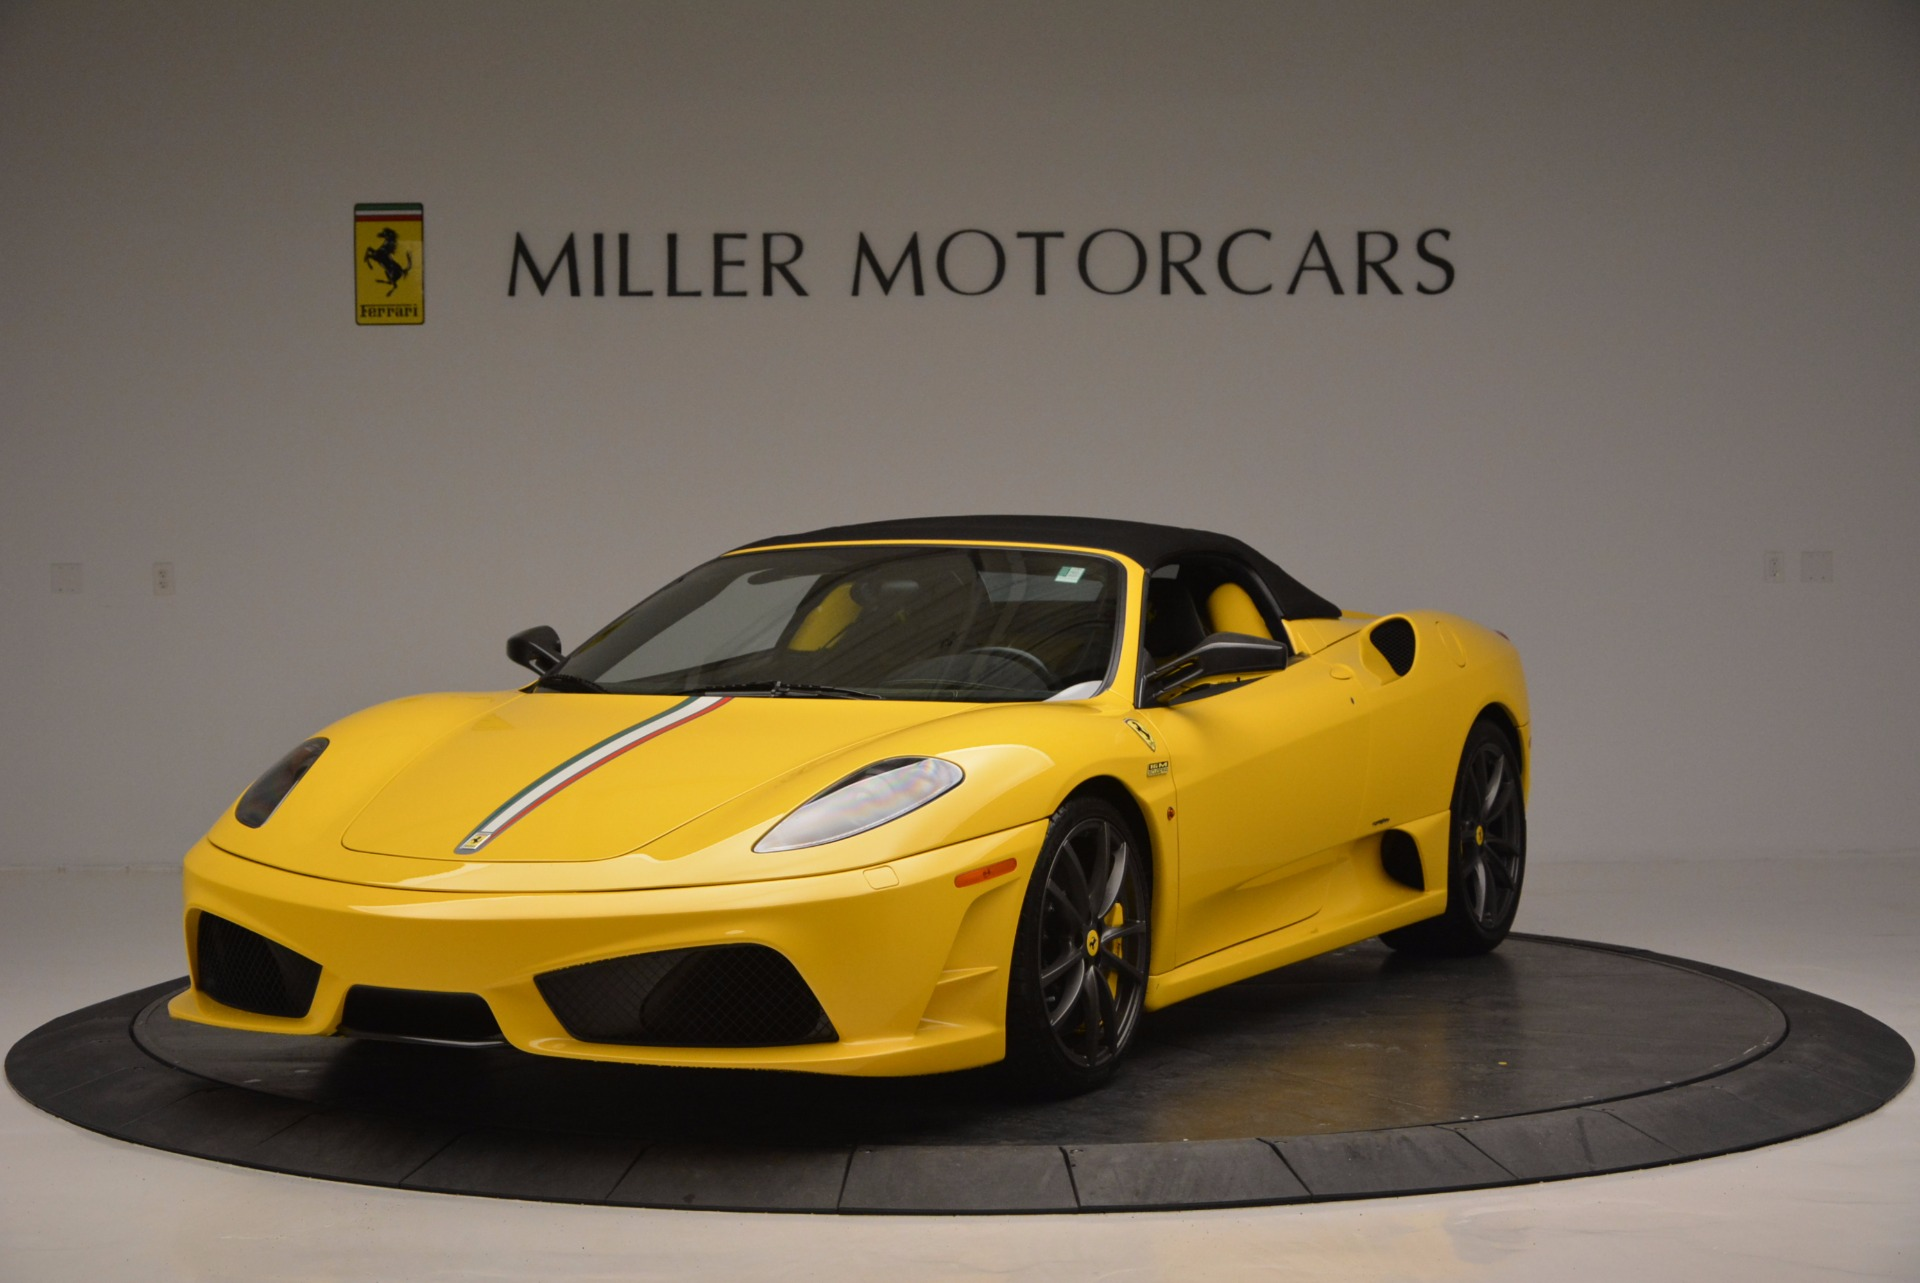 Used 2009 Ferrari F430 Scuderia 16M For Sale In Greenwich, CT 856_p13